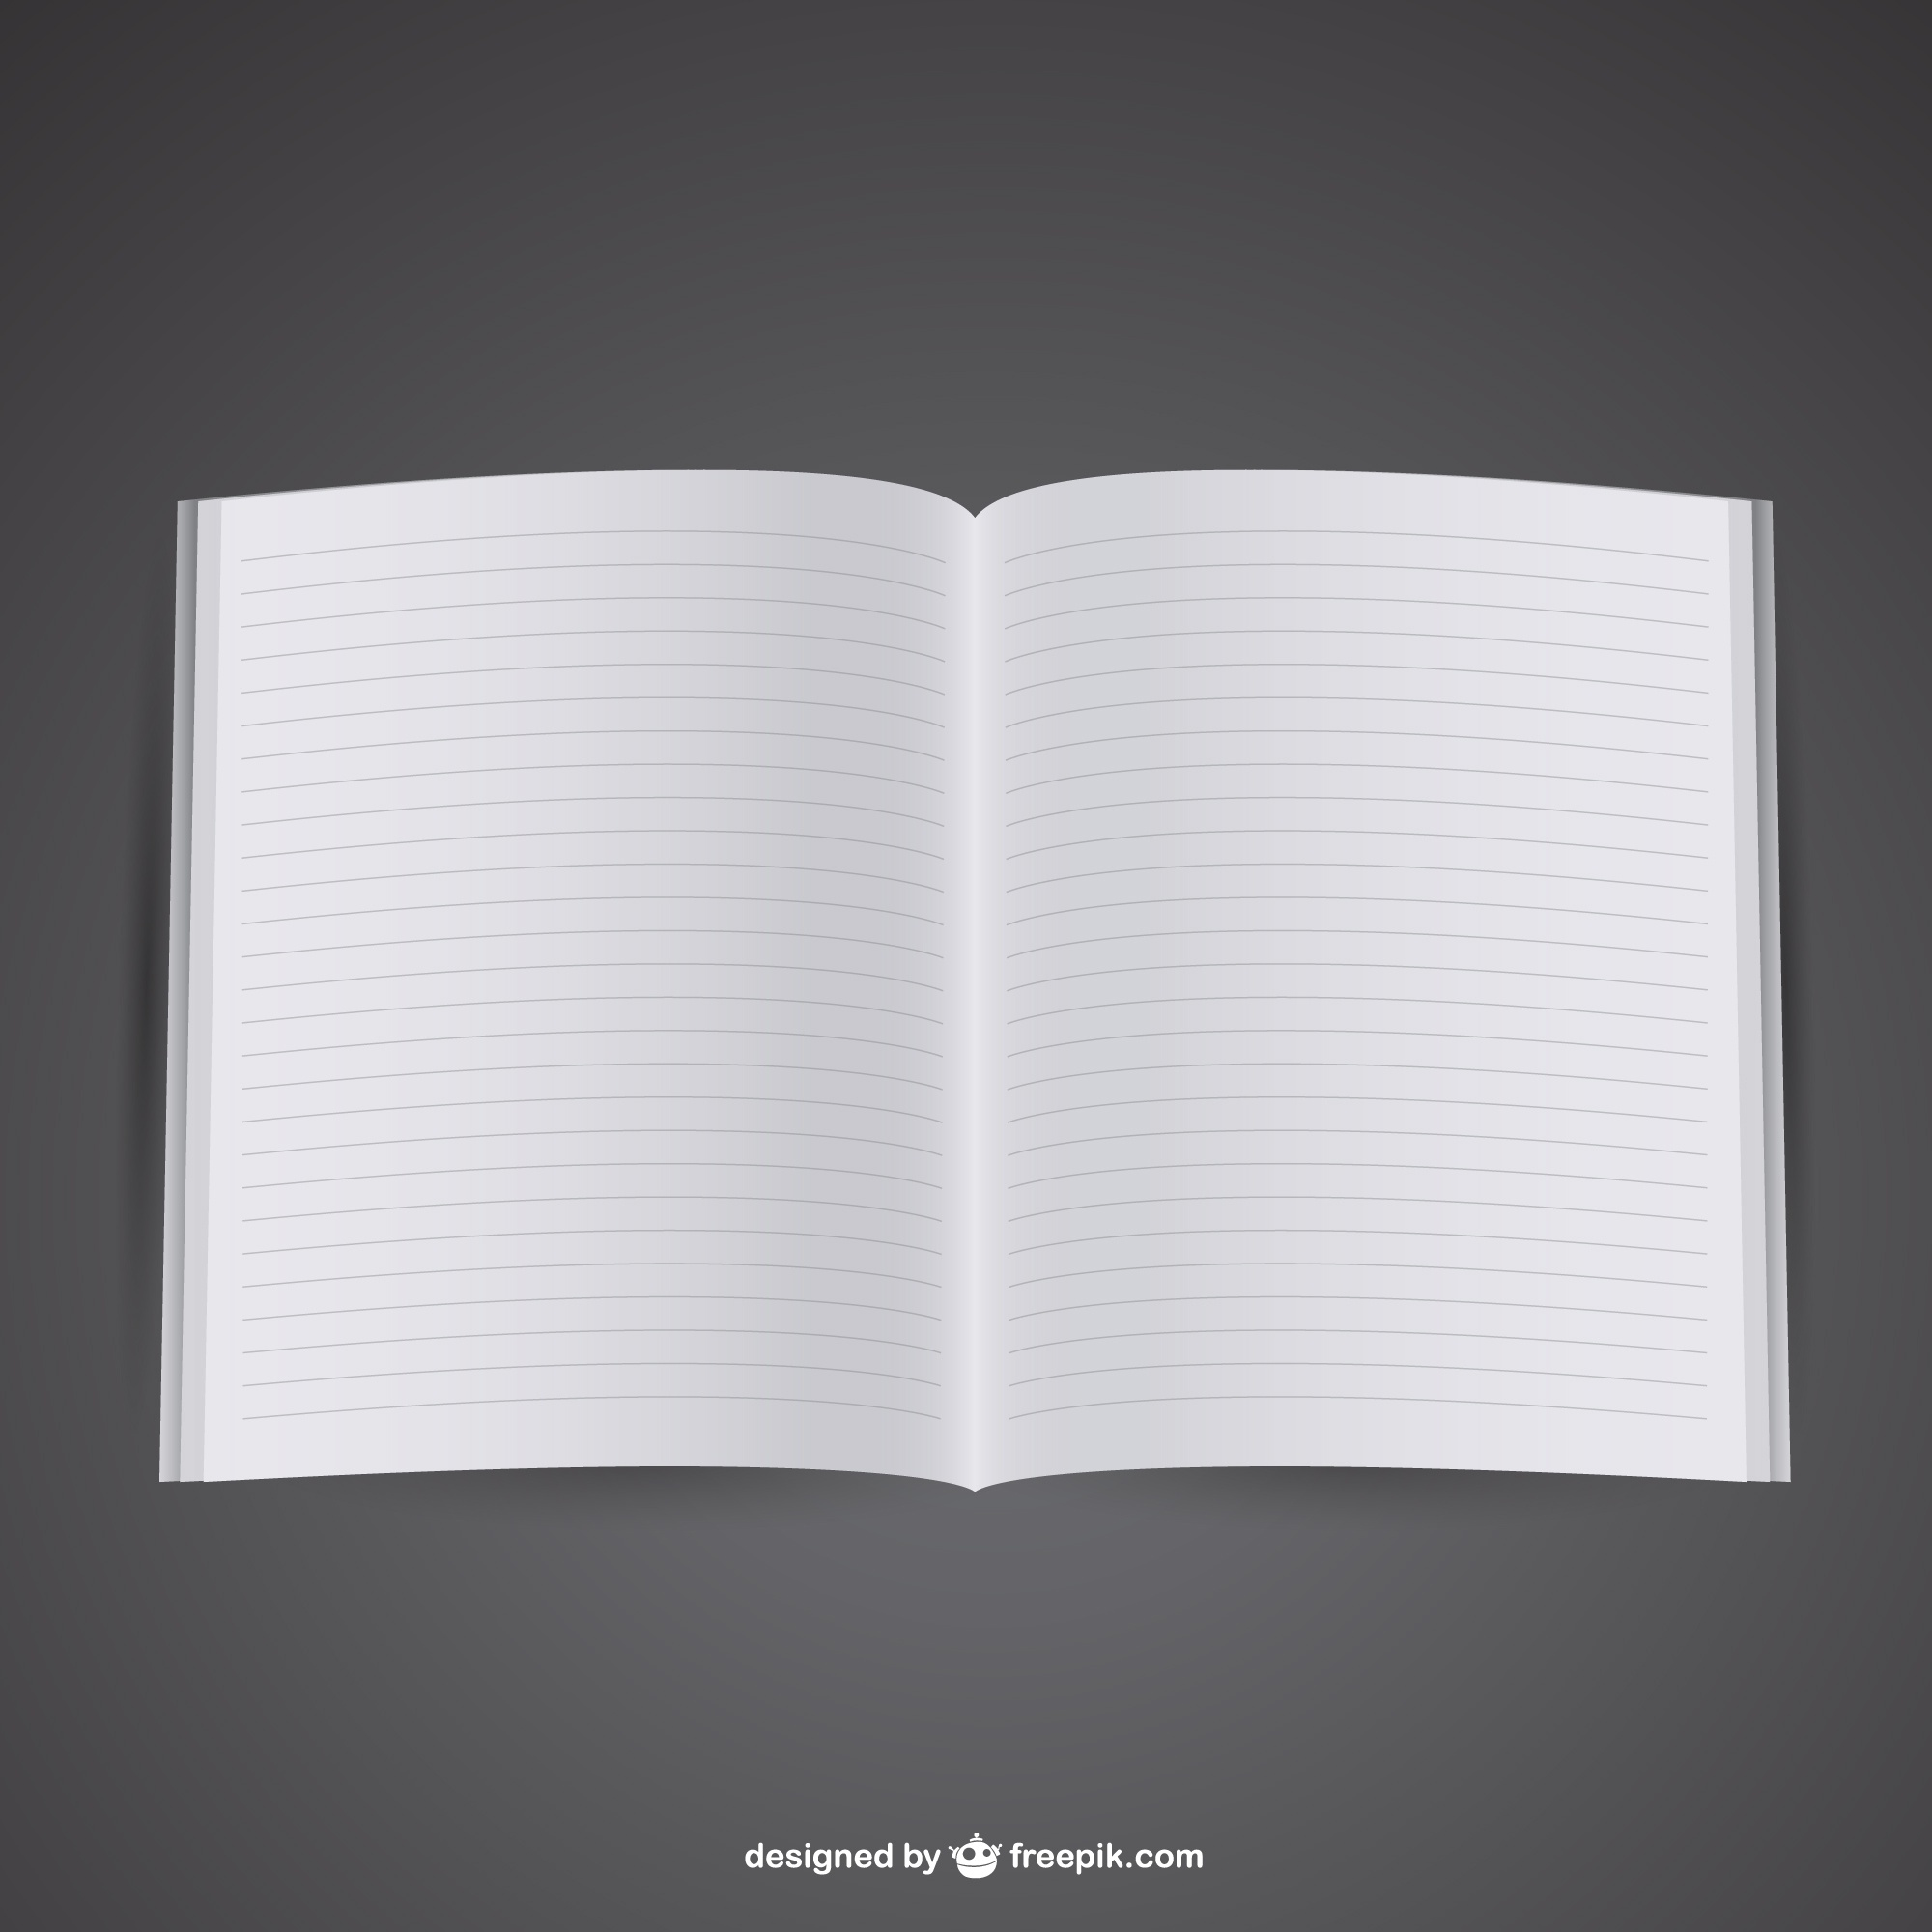 Free mockup of opened notebook